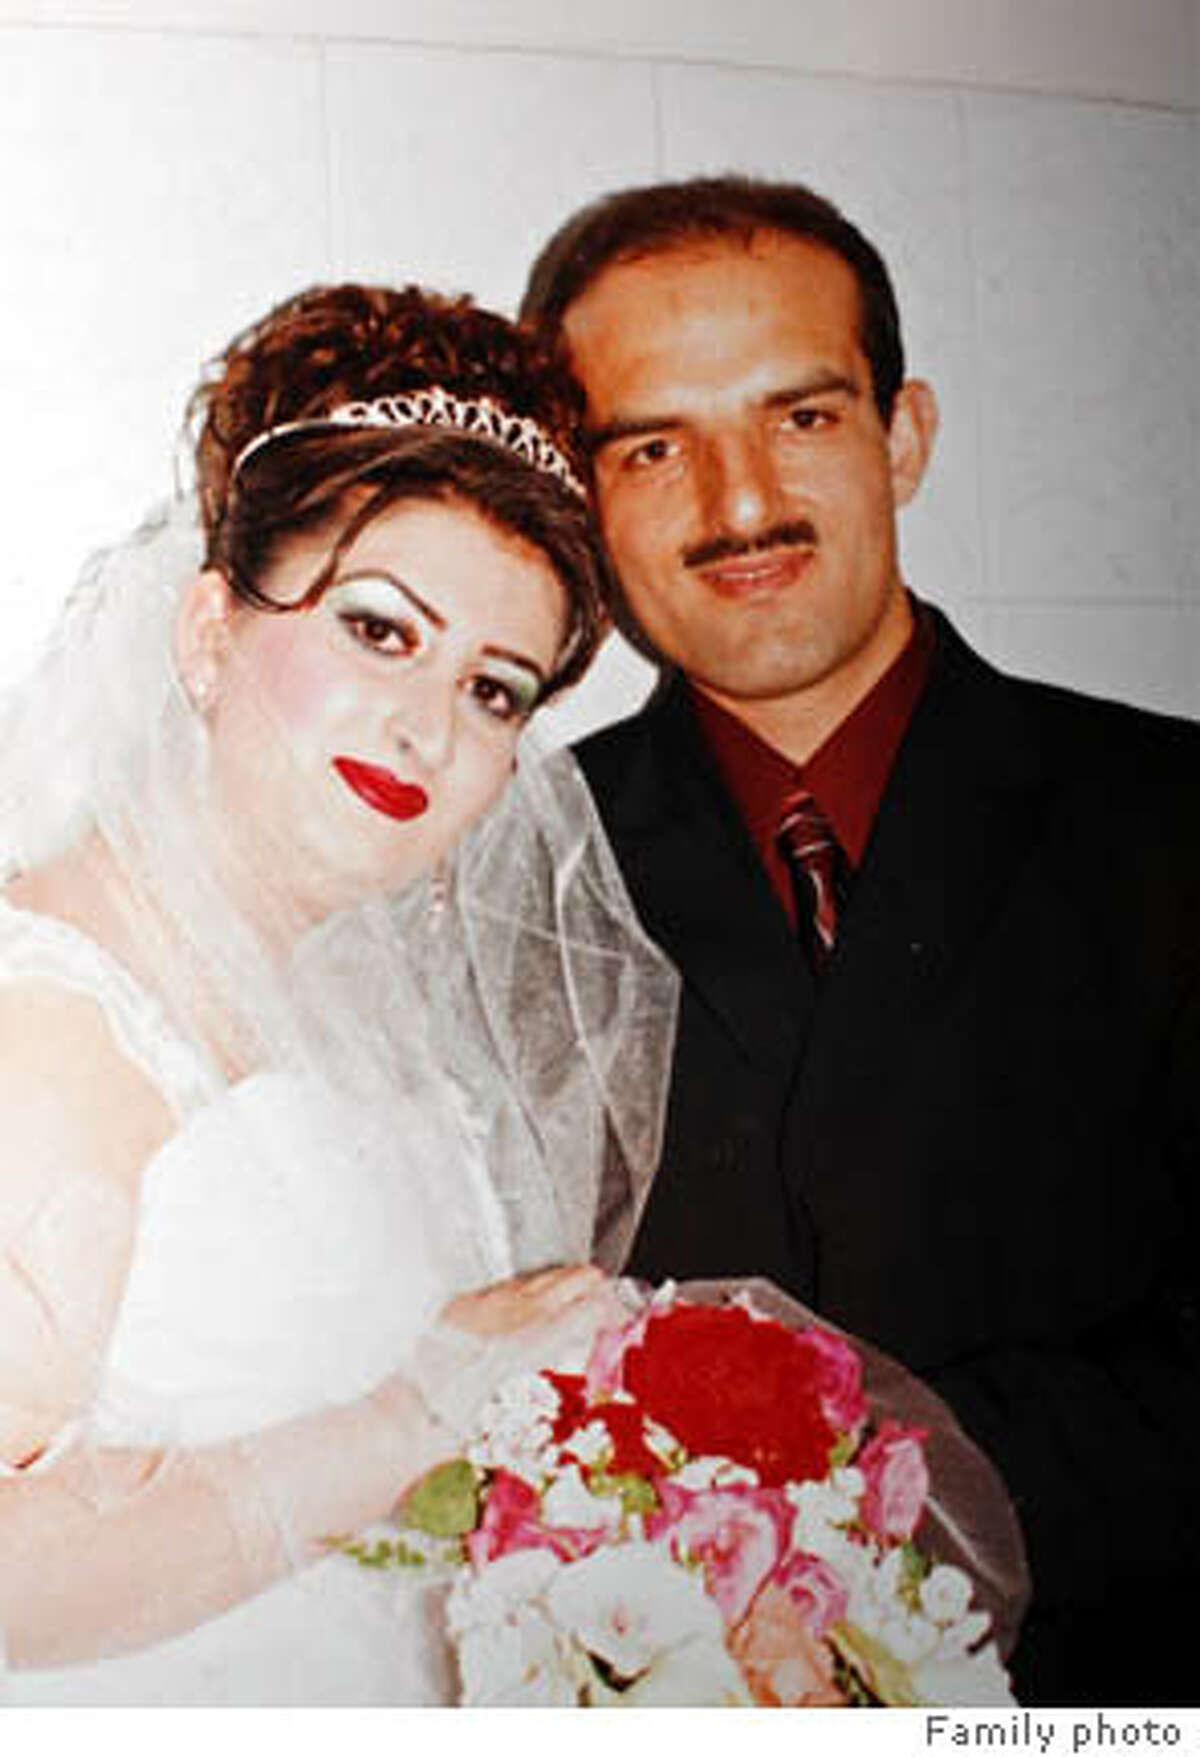 hitandrun_266_mac.jpg Wedding photo believed to be about two weeks old, showing Omeed Aziz Popal with his new bride Nahid, taken in Afghanistan. Hit and run victims in the Fremont area as well as San Francisco, 13 victims in all, one confirmed fatality in Fremont. Suspect Omeed Aziz Popal of Fremont Event in, Fremont, Ca, on 8/29/06. FAMILY HANDOUT Ran on: 08-30-2006 Ran on: 08-31-2006 Hit-run suspect Omeed Aziz Popal with his bride, Nahid, after their recent arranged marriage in Afghanistan. Ran on: 08-31-2006 Hit-run suspect Omeed Aziz Popal with his bride, Nahid, after their recent arranged marriage in Afghanistan.